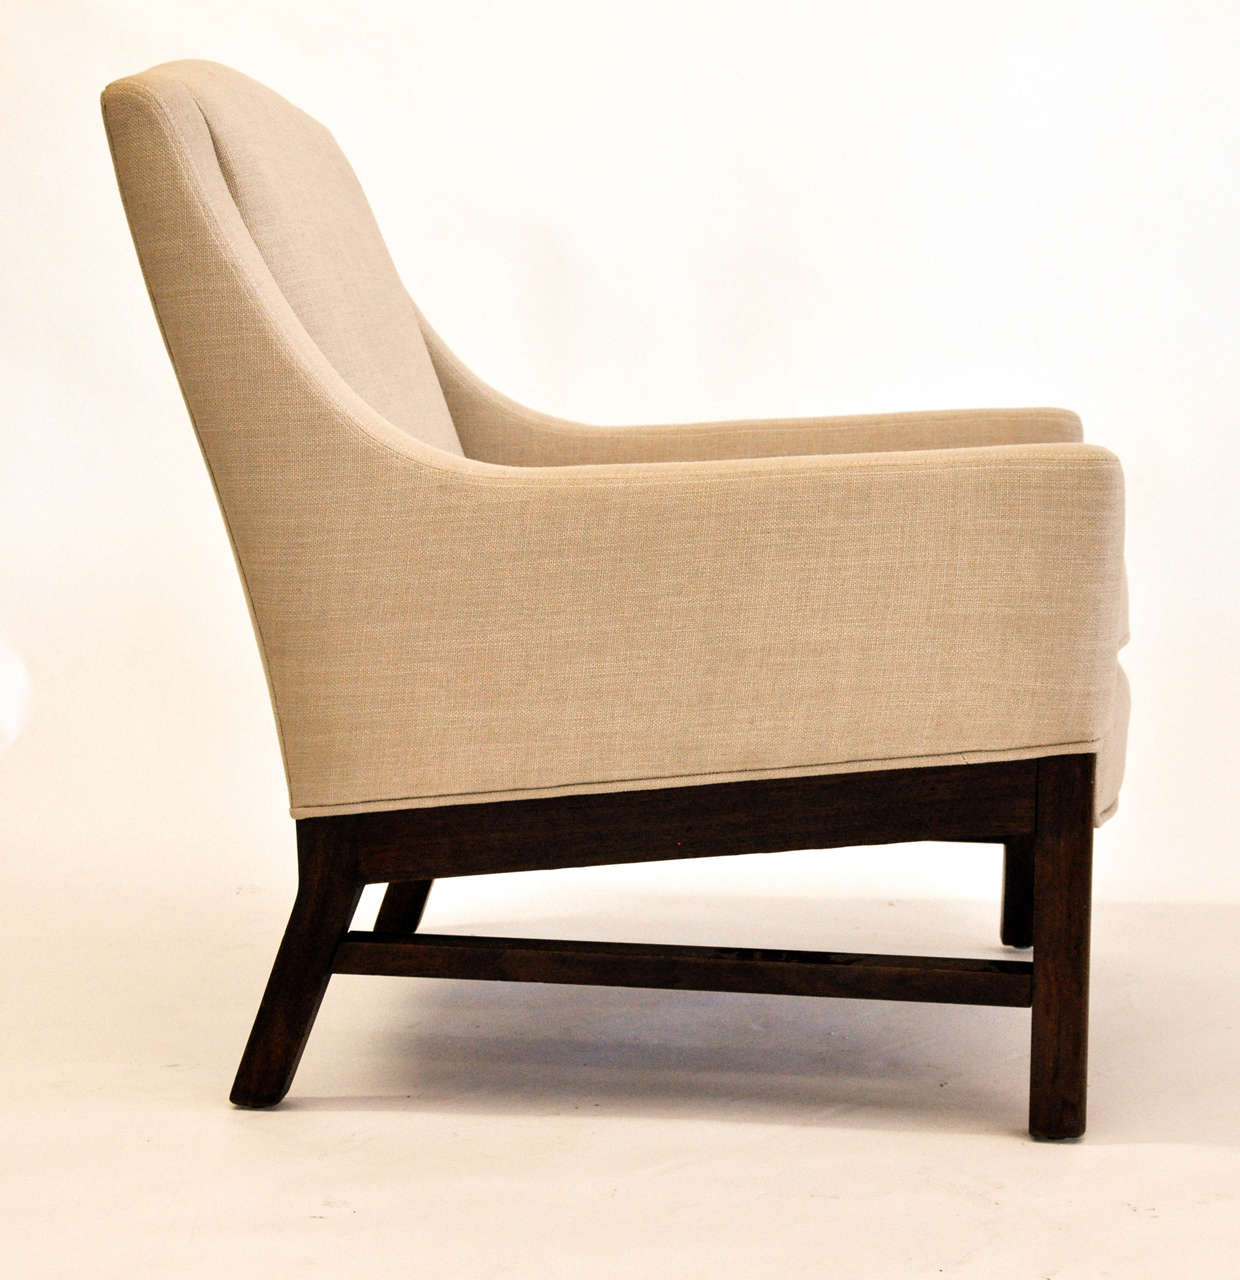 Lounge Chairs Attributed to Edward Wormley for Dunbar, 1950s - The Exchange Int